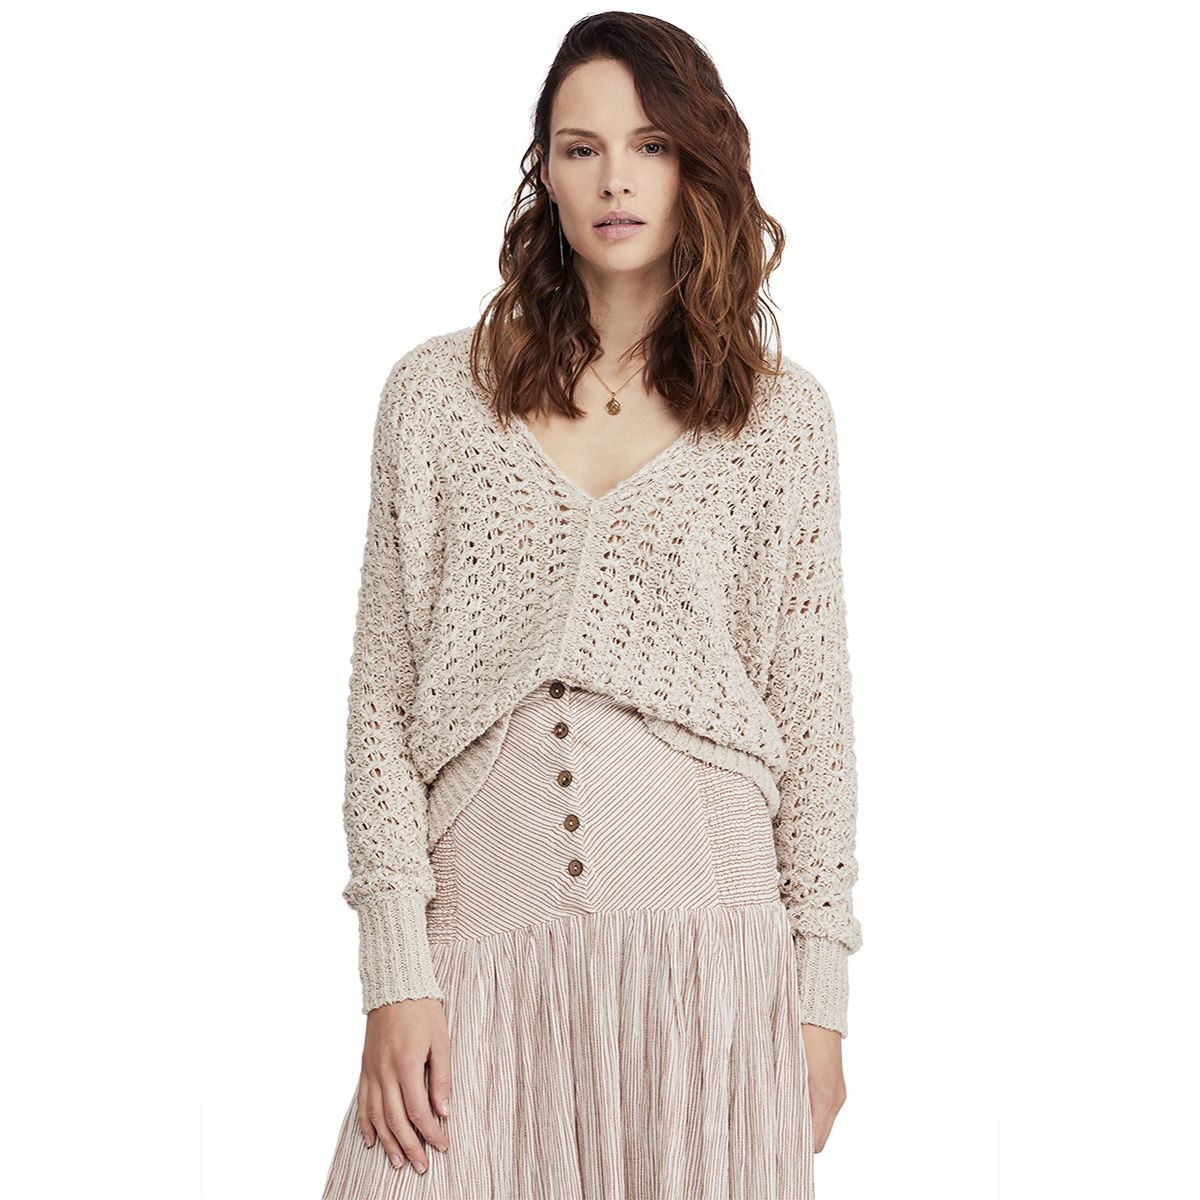 bfbc3bcf1f5 Free People Clothing - Womens Apparel - Macy s